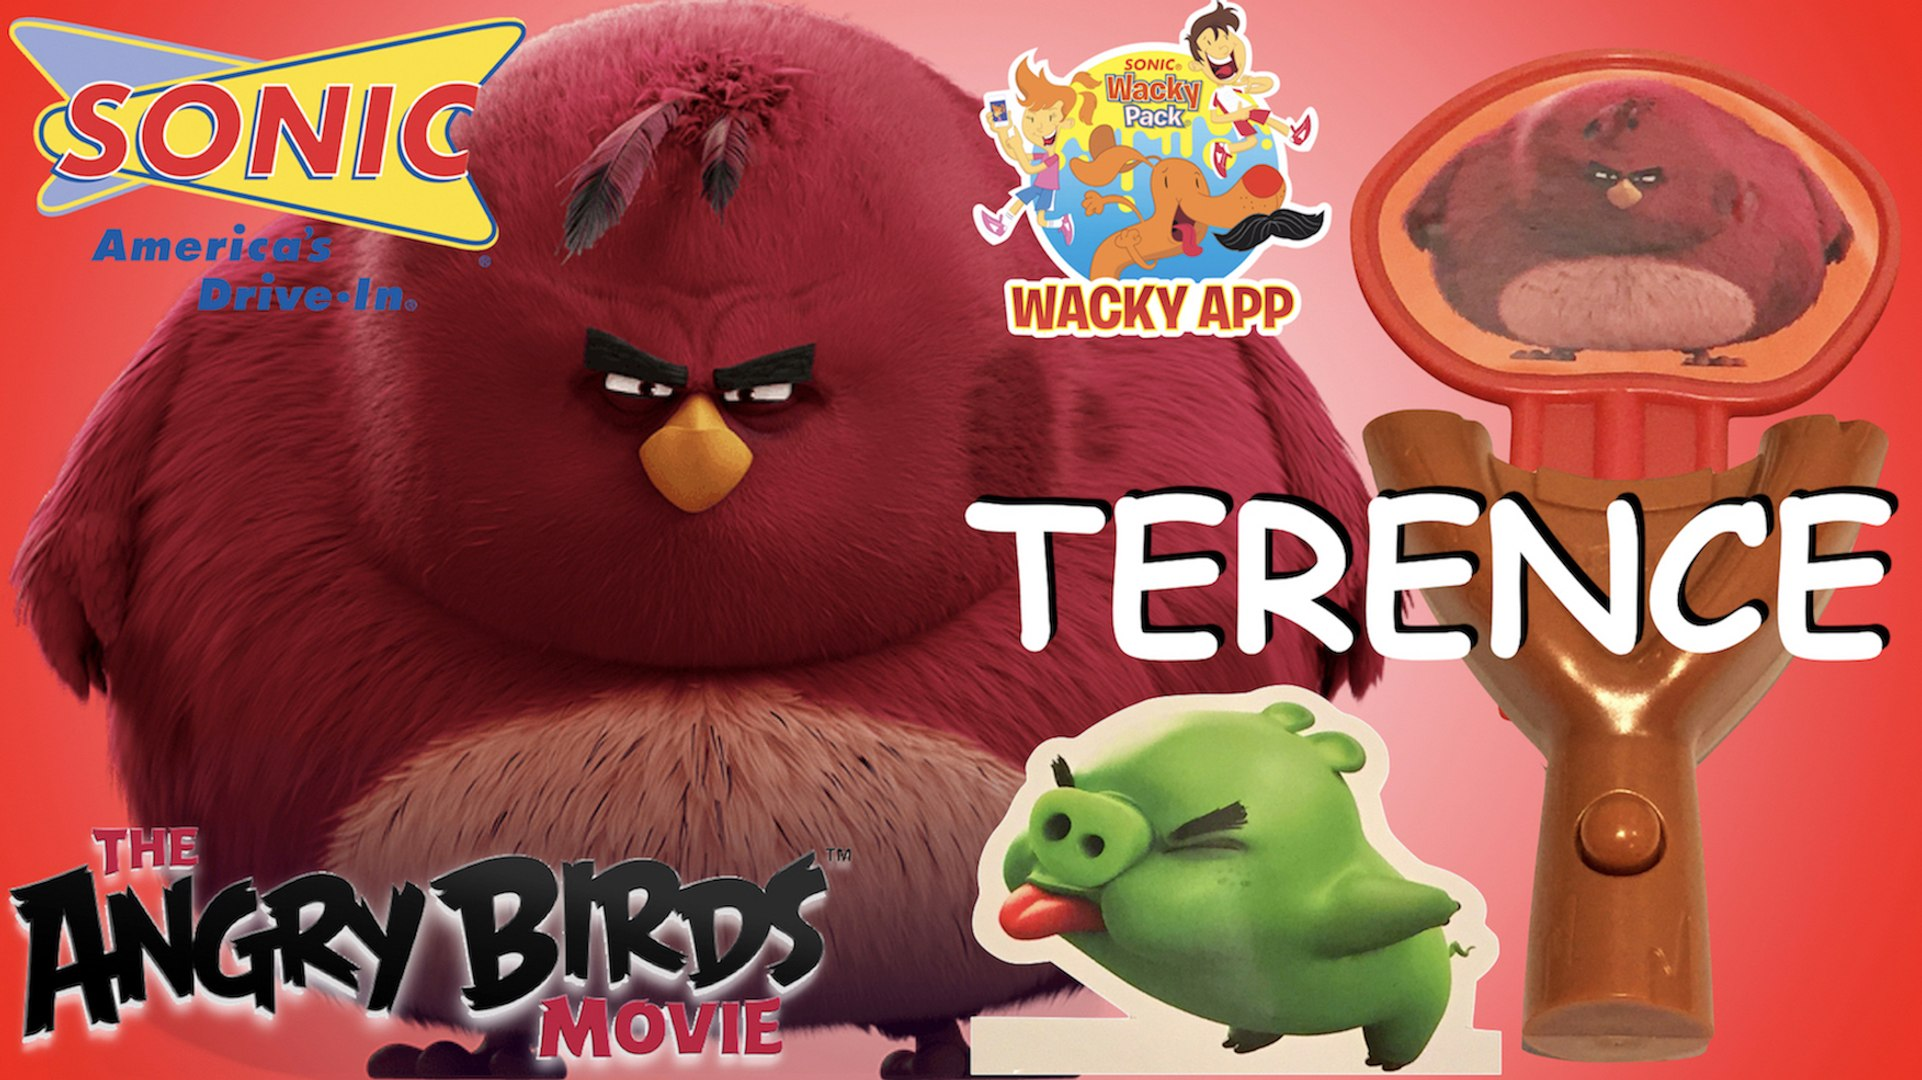 2016 PPAP Sonic The Angry Birds Movie Terence Unbox Wacky Pack Toy #6